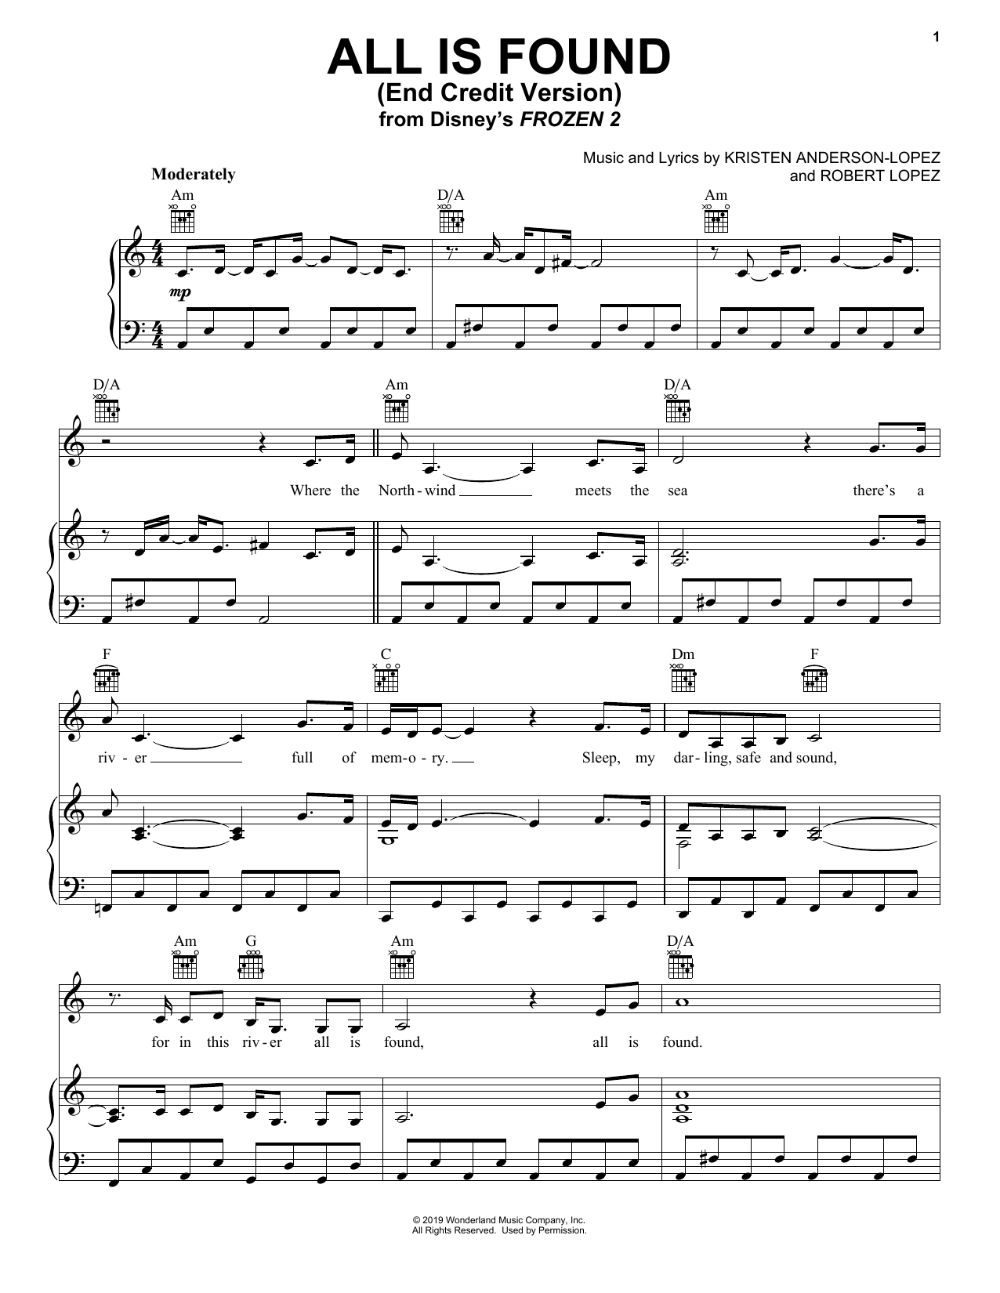 Kacey Musgraves All Is Found From Disney S Frozen 2 End Credit Version Sheet Music Notes Chords Disney Sheet Music Ukulele Chords Songs Piano Songs Sheet Music